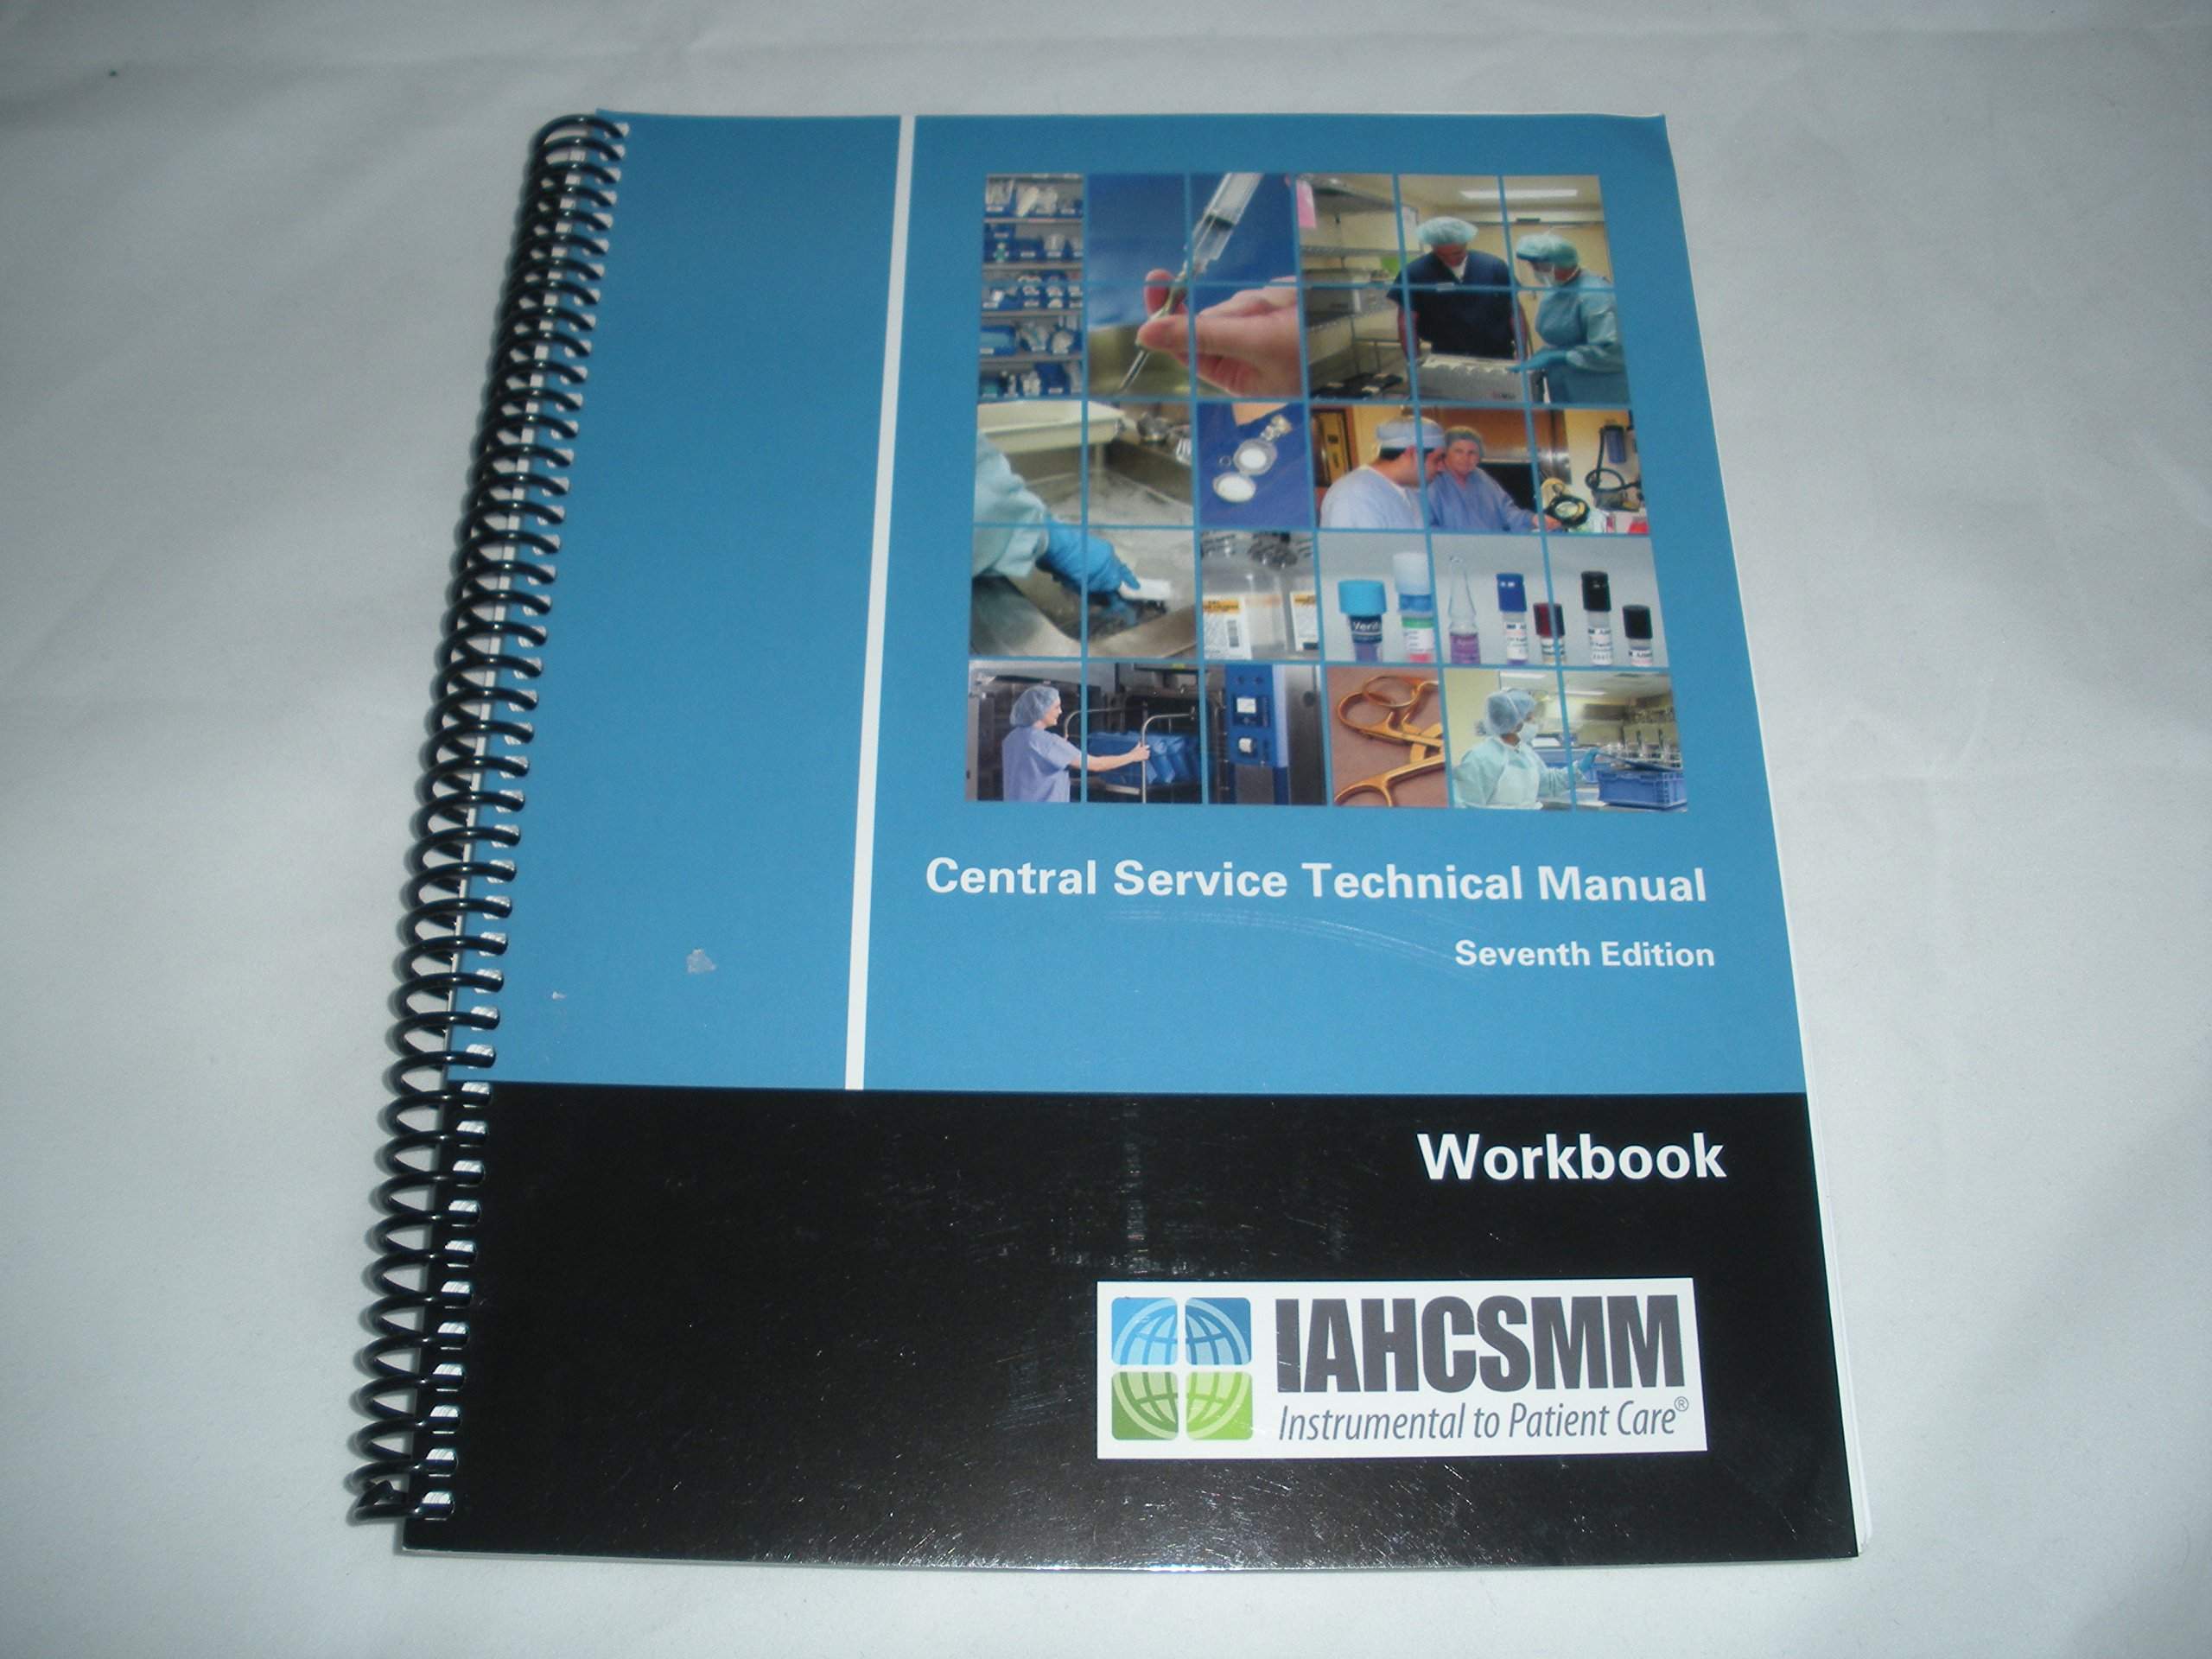 Workbook for Use with Central Service Technical Manual 7th Edition  (Workbook Only): Amazon.com: Books